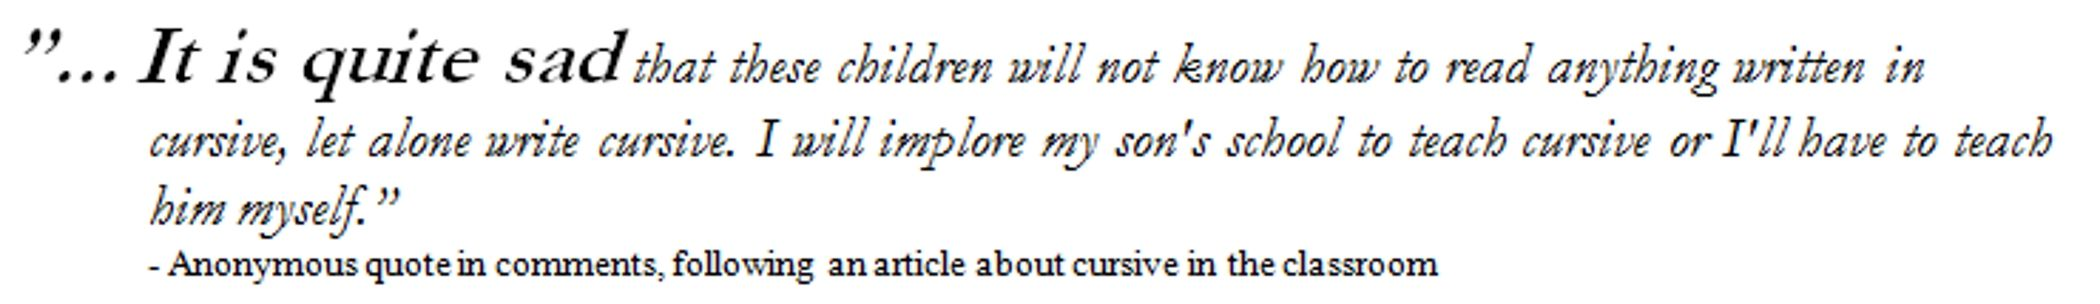 Have an open mind and learn why cursive writing is standing in the way of progress for our young students. #cursive #writing #commoncore #school  http://stephenlwilson.blogspot.com/2014/07/cursive-writing-has-ran-its-course-it.html